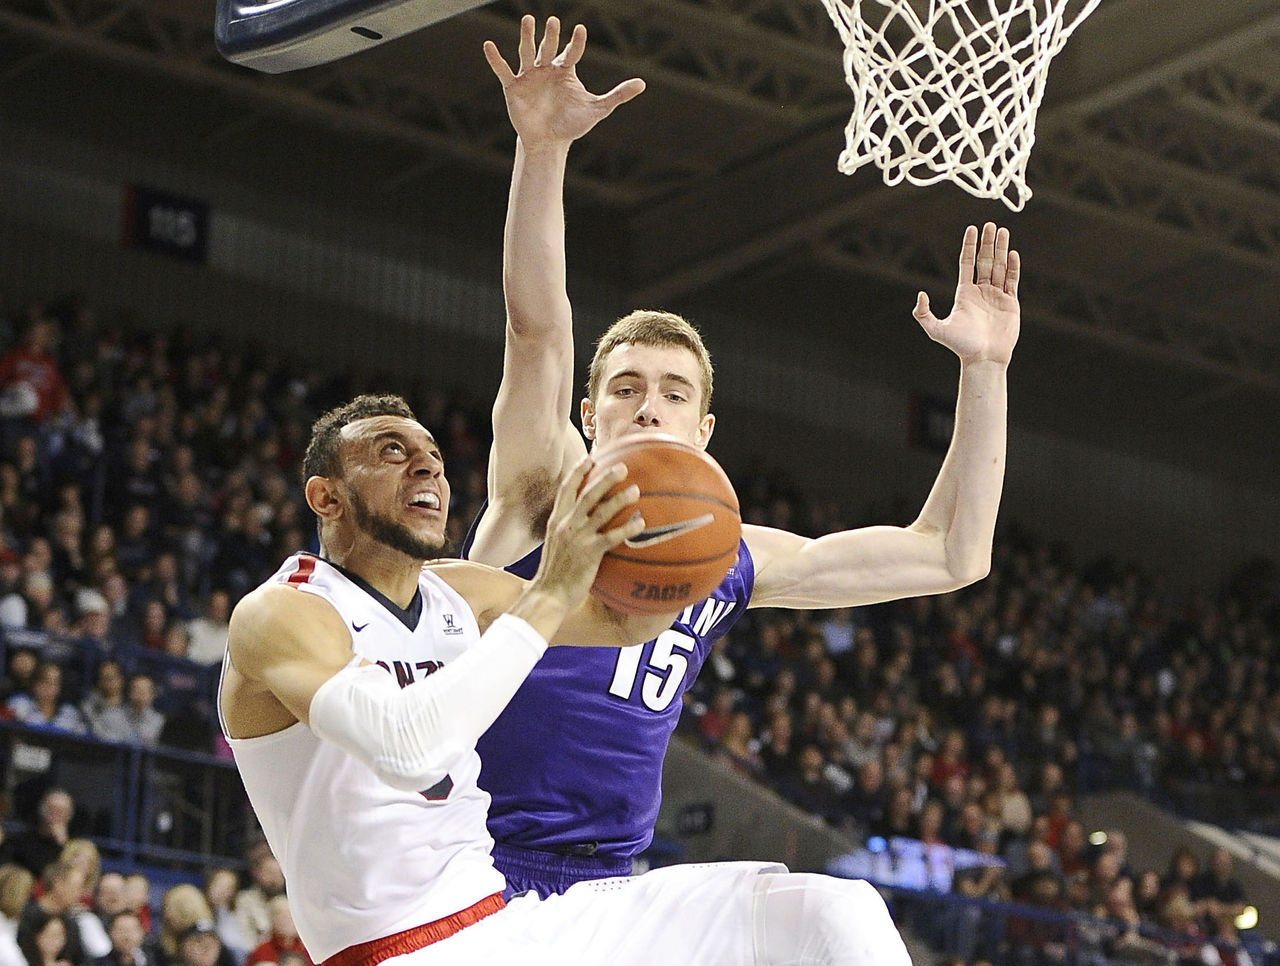 Cropped 2017 01 22t033355z 1775975215 nocid rtrmadp 3 ncaa basketball portland at gonzaga